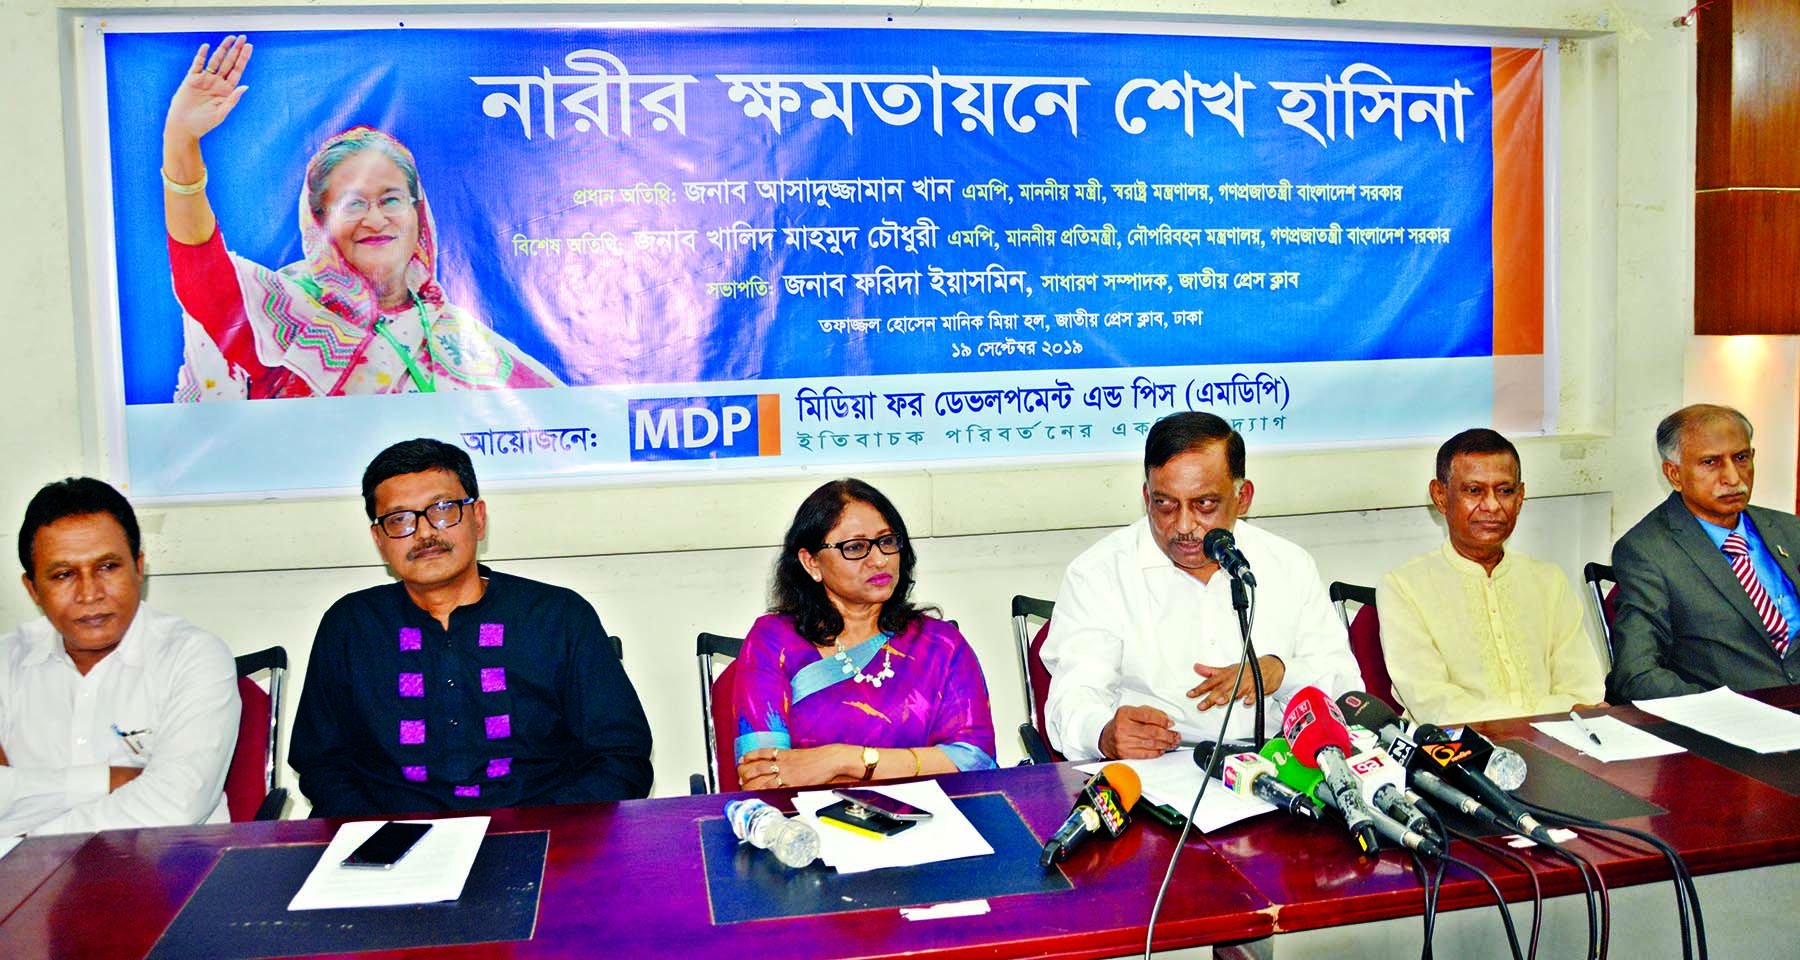 Home Minister Asaduzzaman Khan speaking at a discussion on 'Sheikh Hasina on Women Empowerment' organised by Media for Development and Peace at the Jatiya Press Club on Thursday. State Minister for Shipping Khalid Mahmud Chowdhury was present on the occasion.